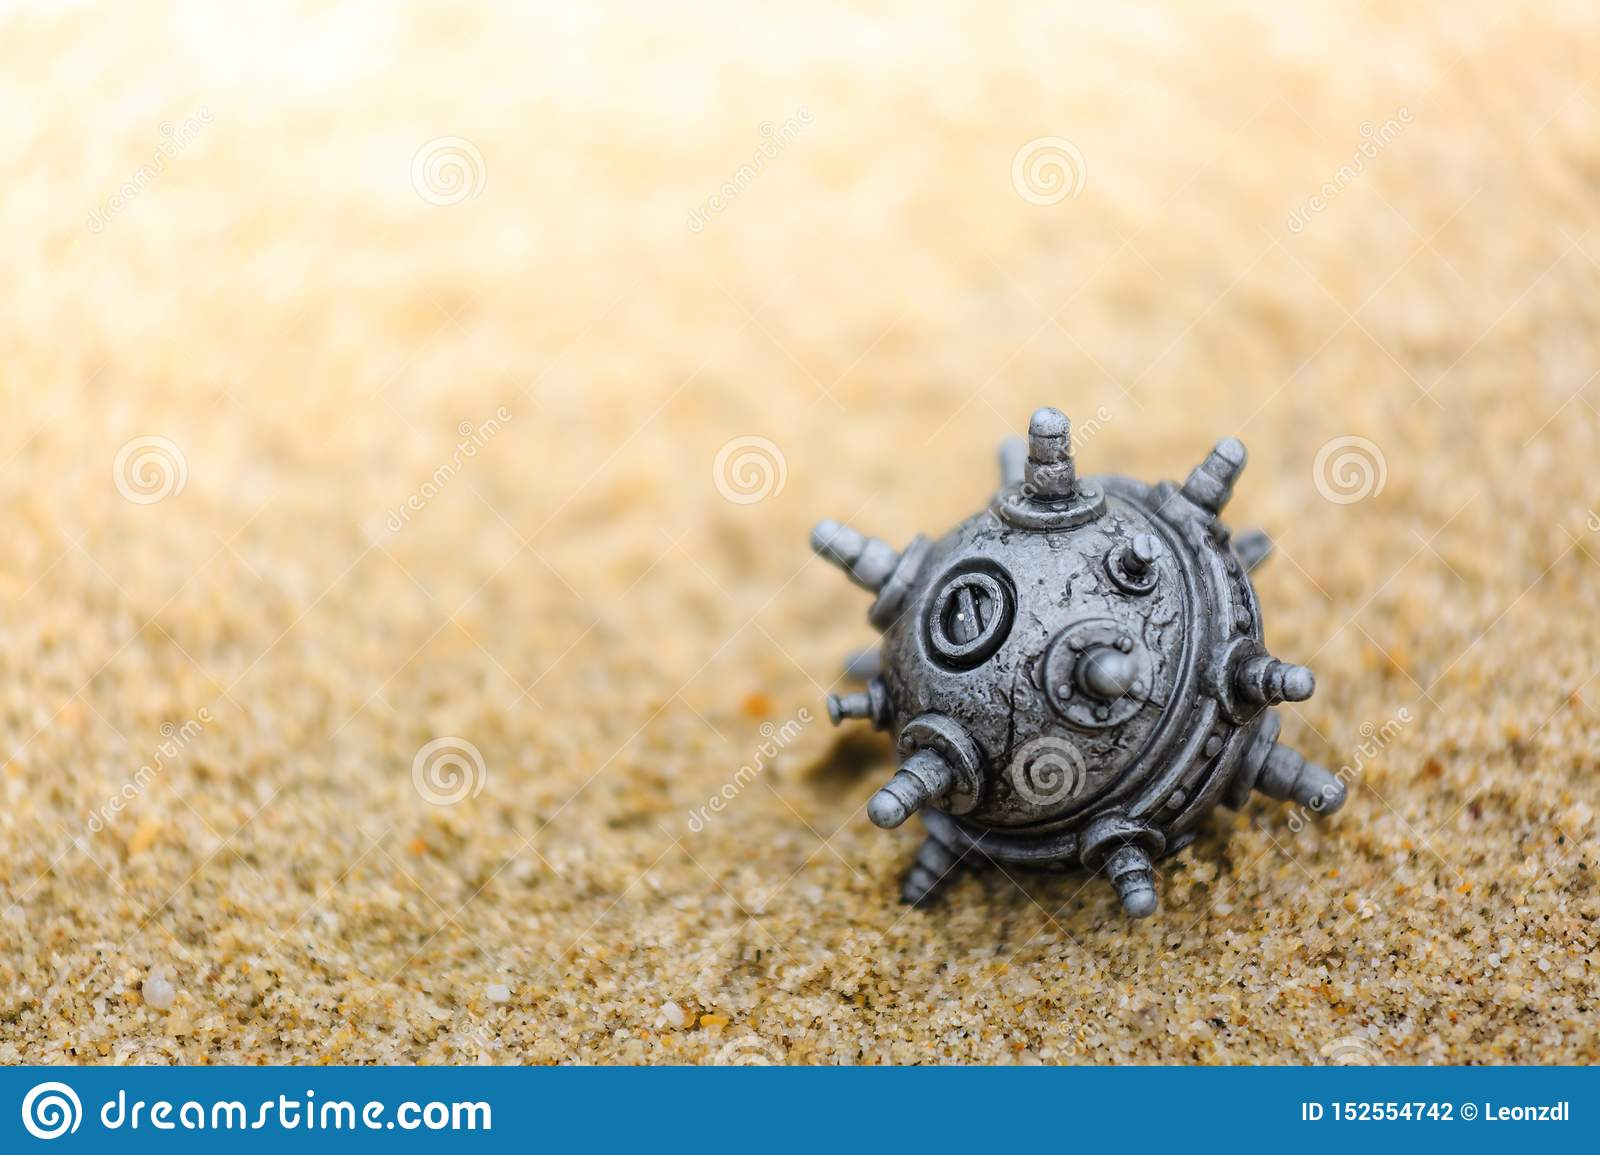 Silver color mine toy on the sands